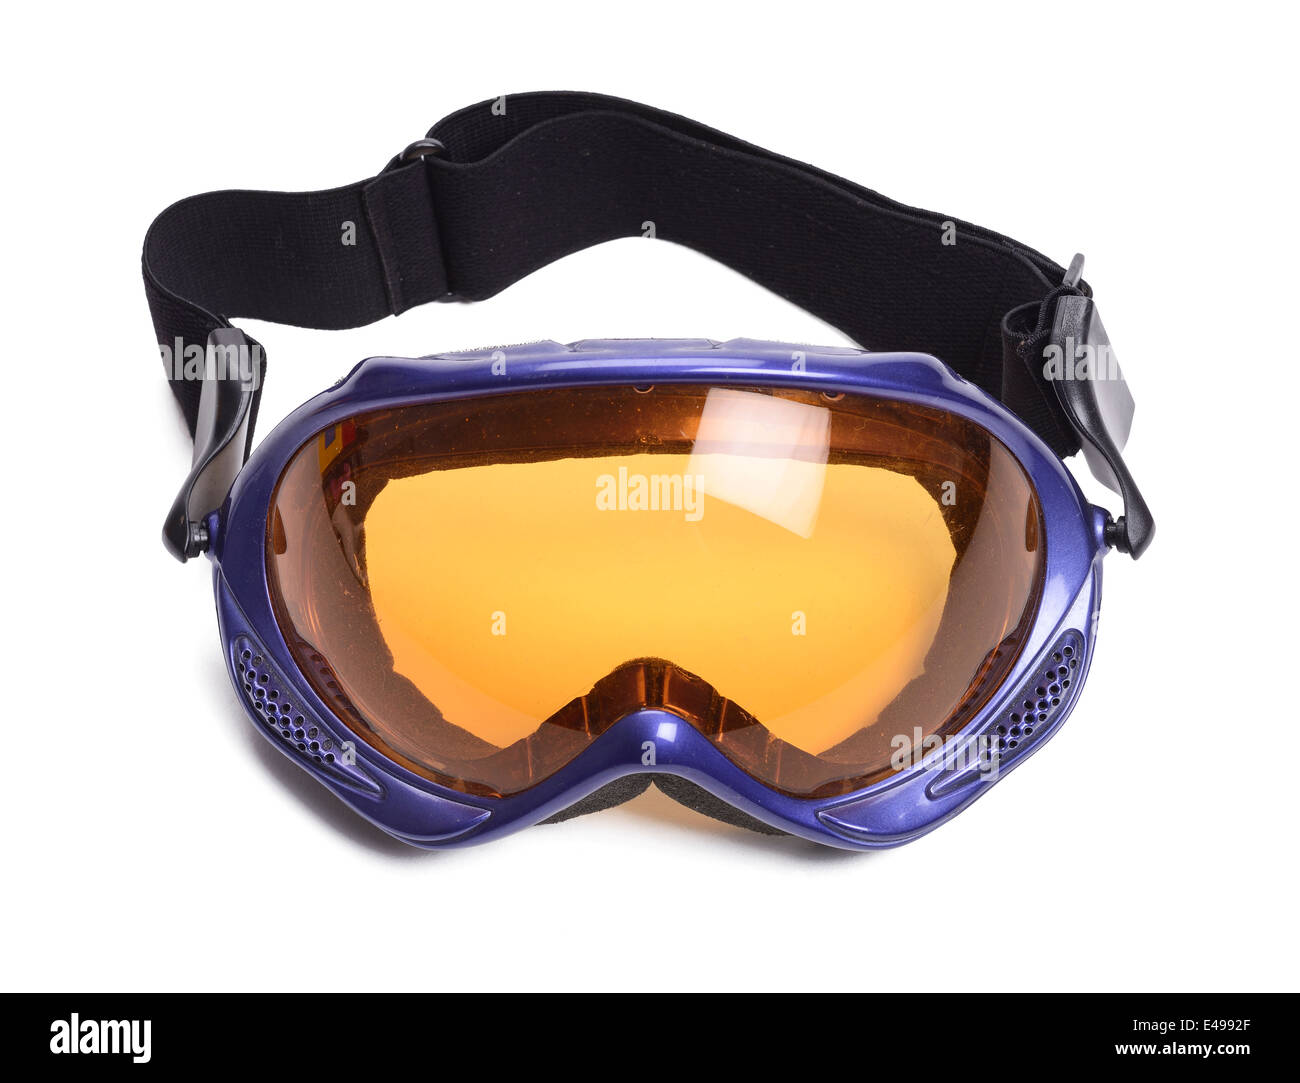 Ski goggles with an orange tinted lens - Stock Image